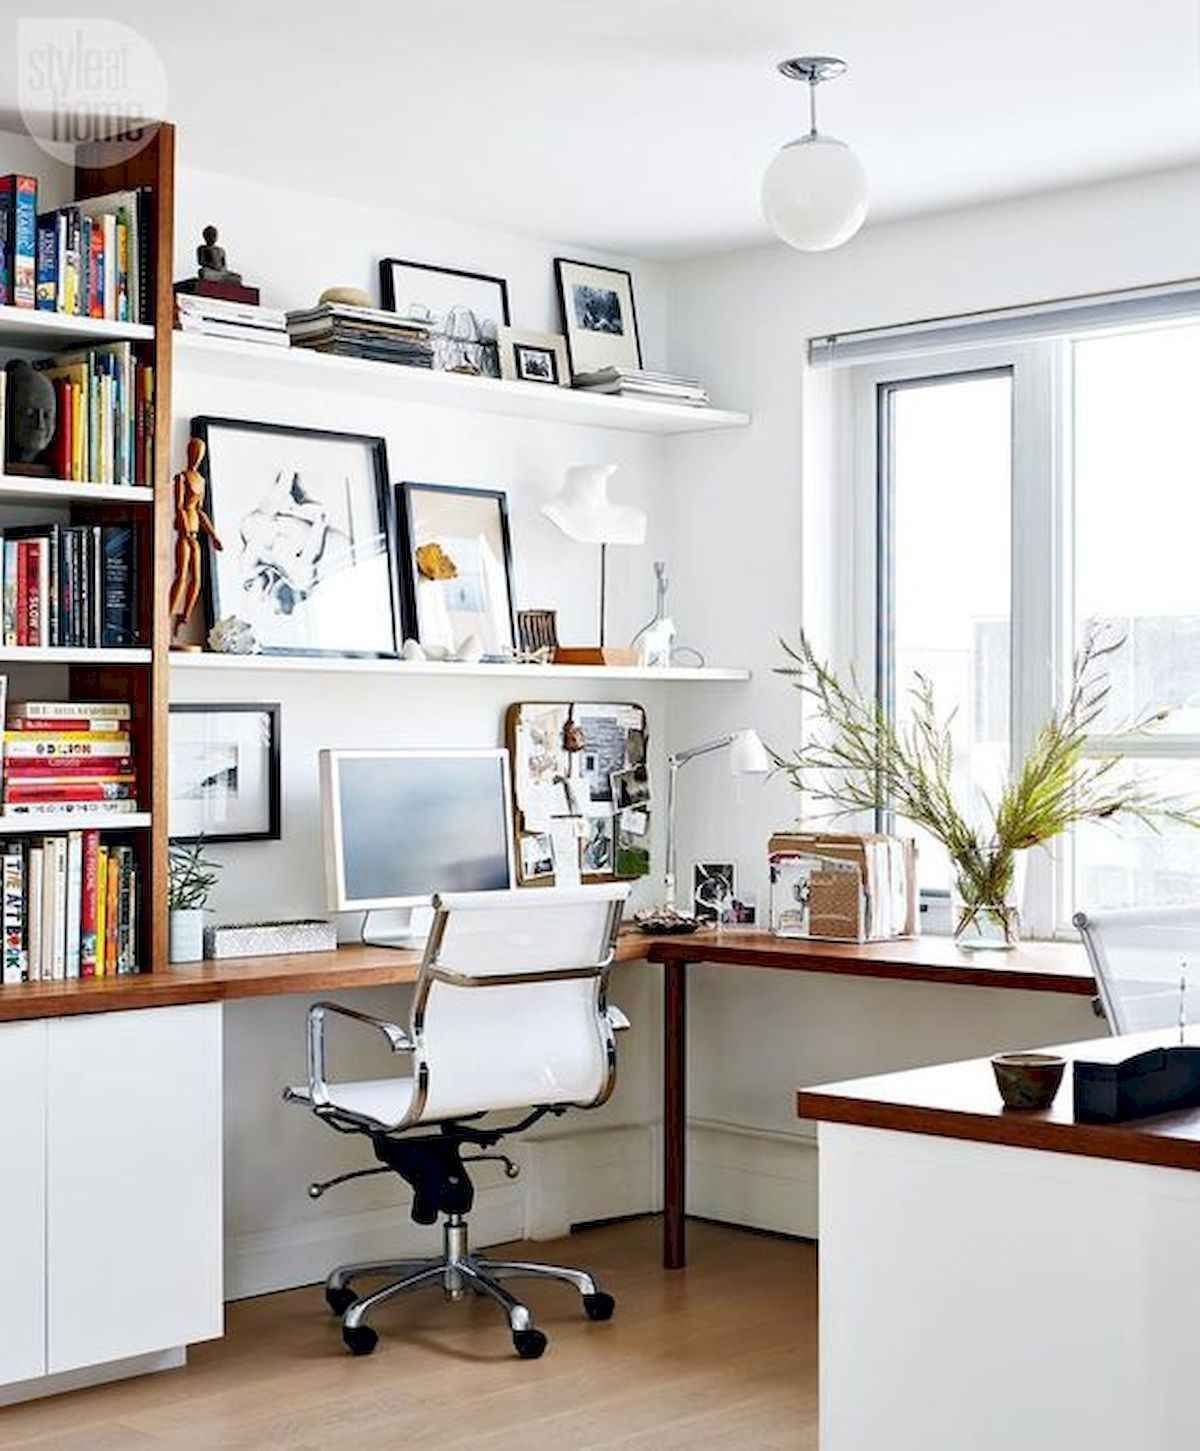 55 Brilliant Workspace Desk Design Ideas On A Budget 40 In 2020